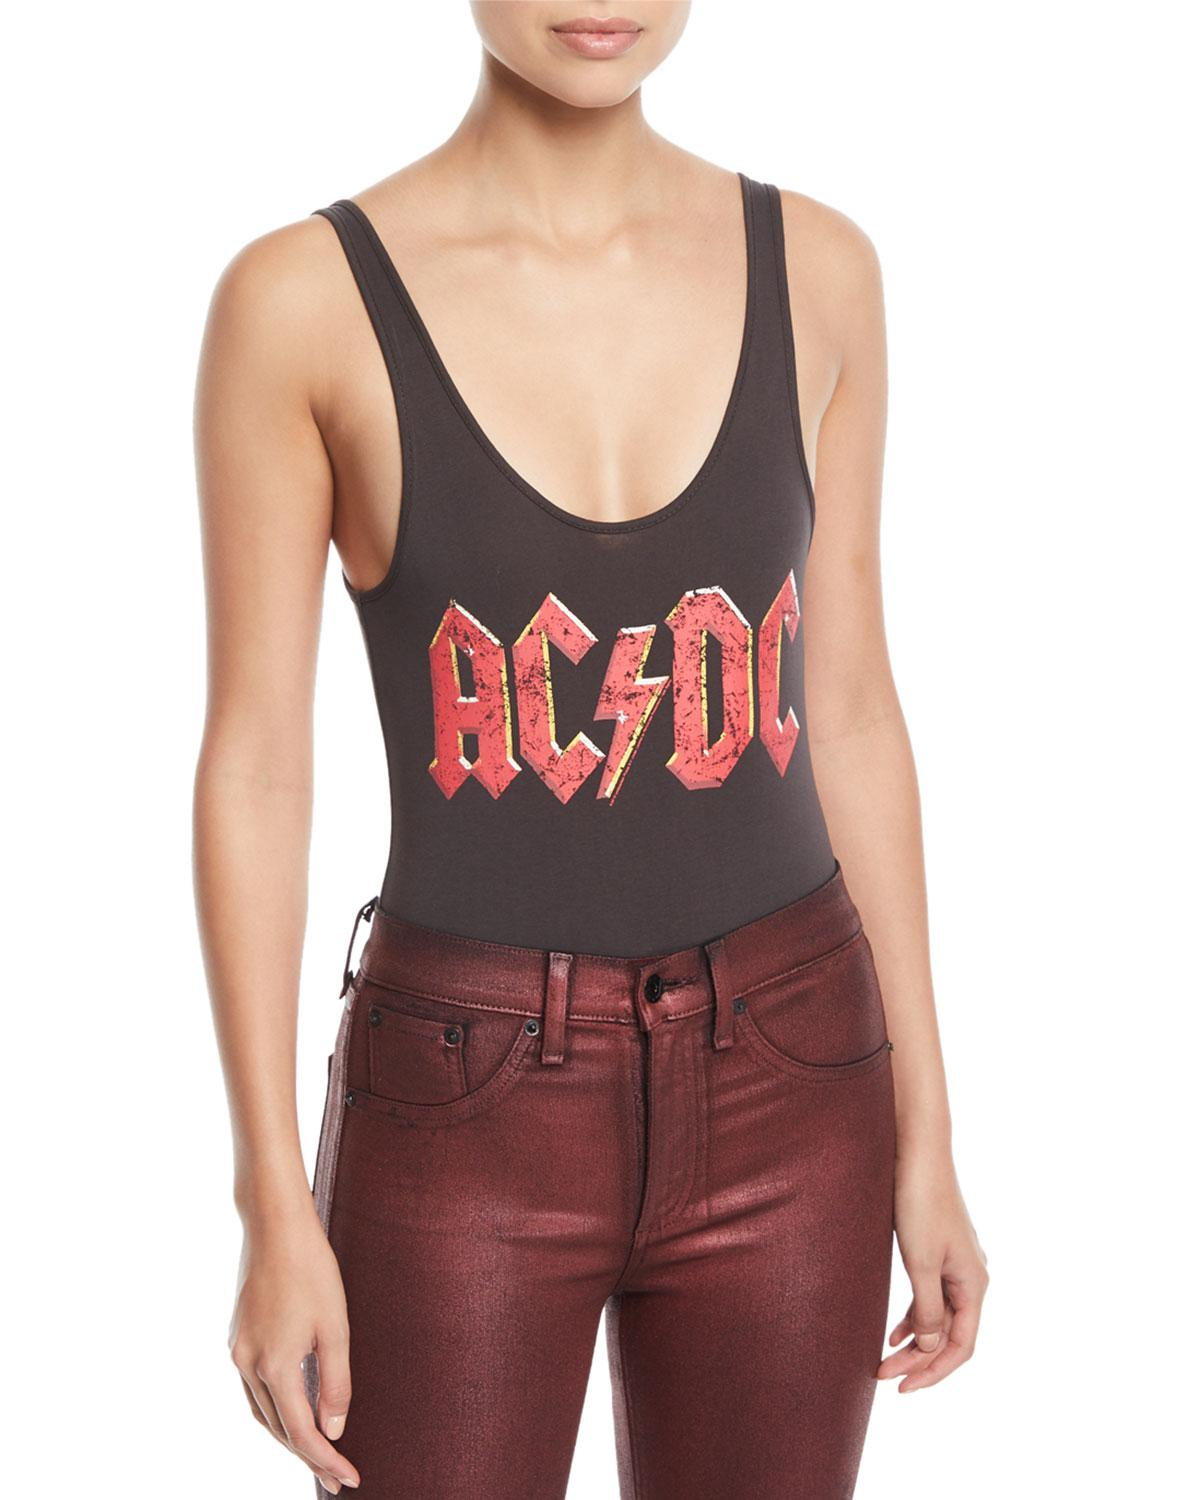 0152557a78f744 Lyst - Chaser Classic Ac dc Band Logo Graphic Bodysuit in Black